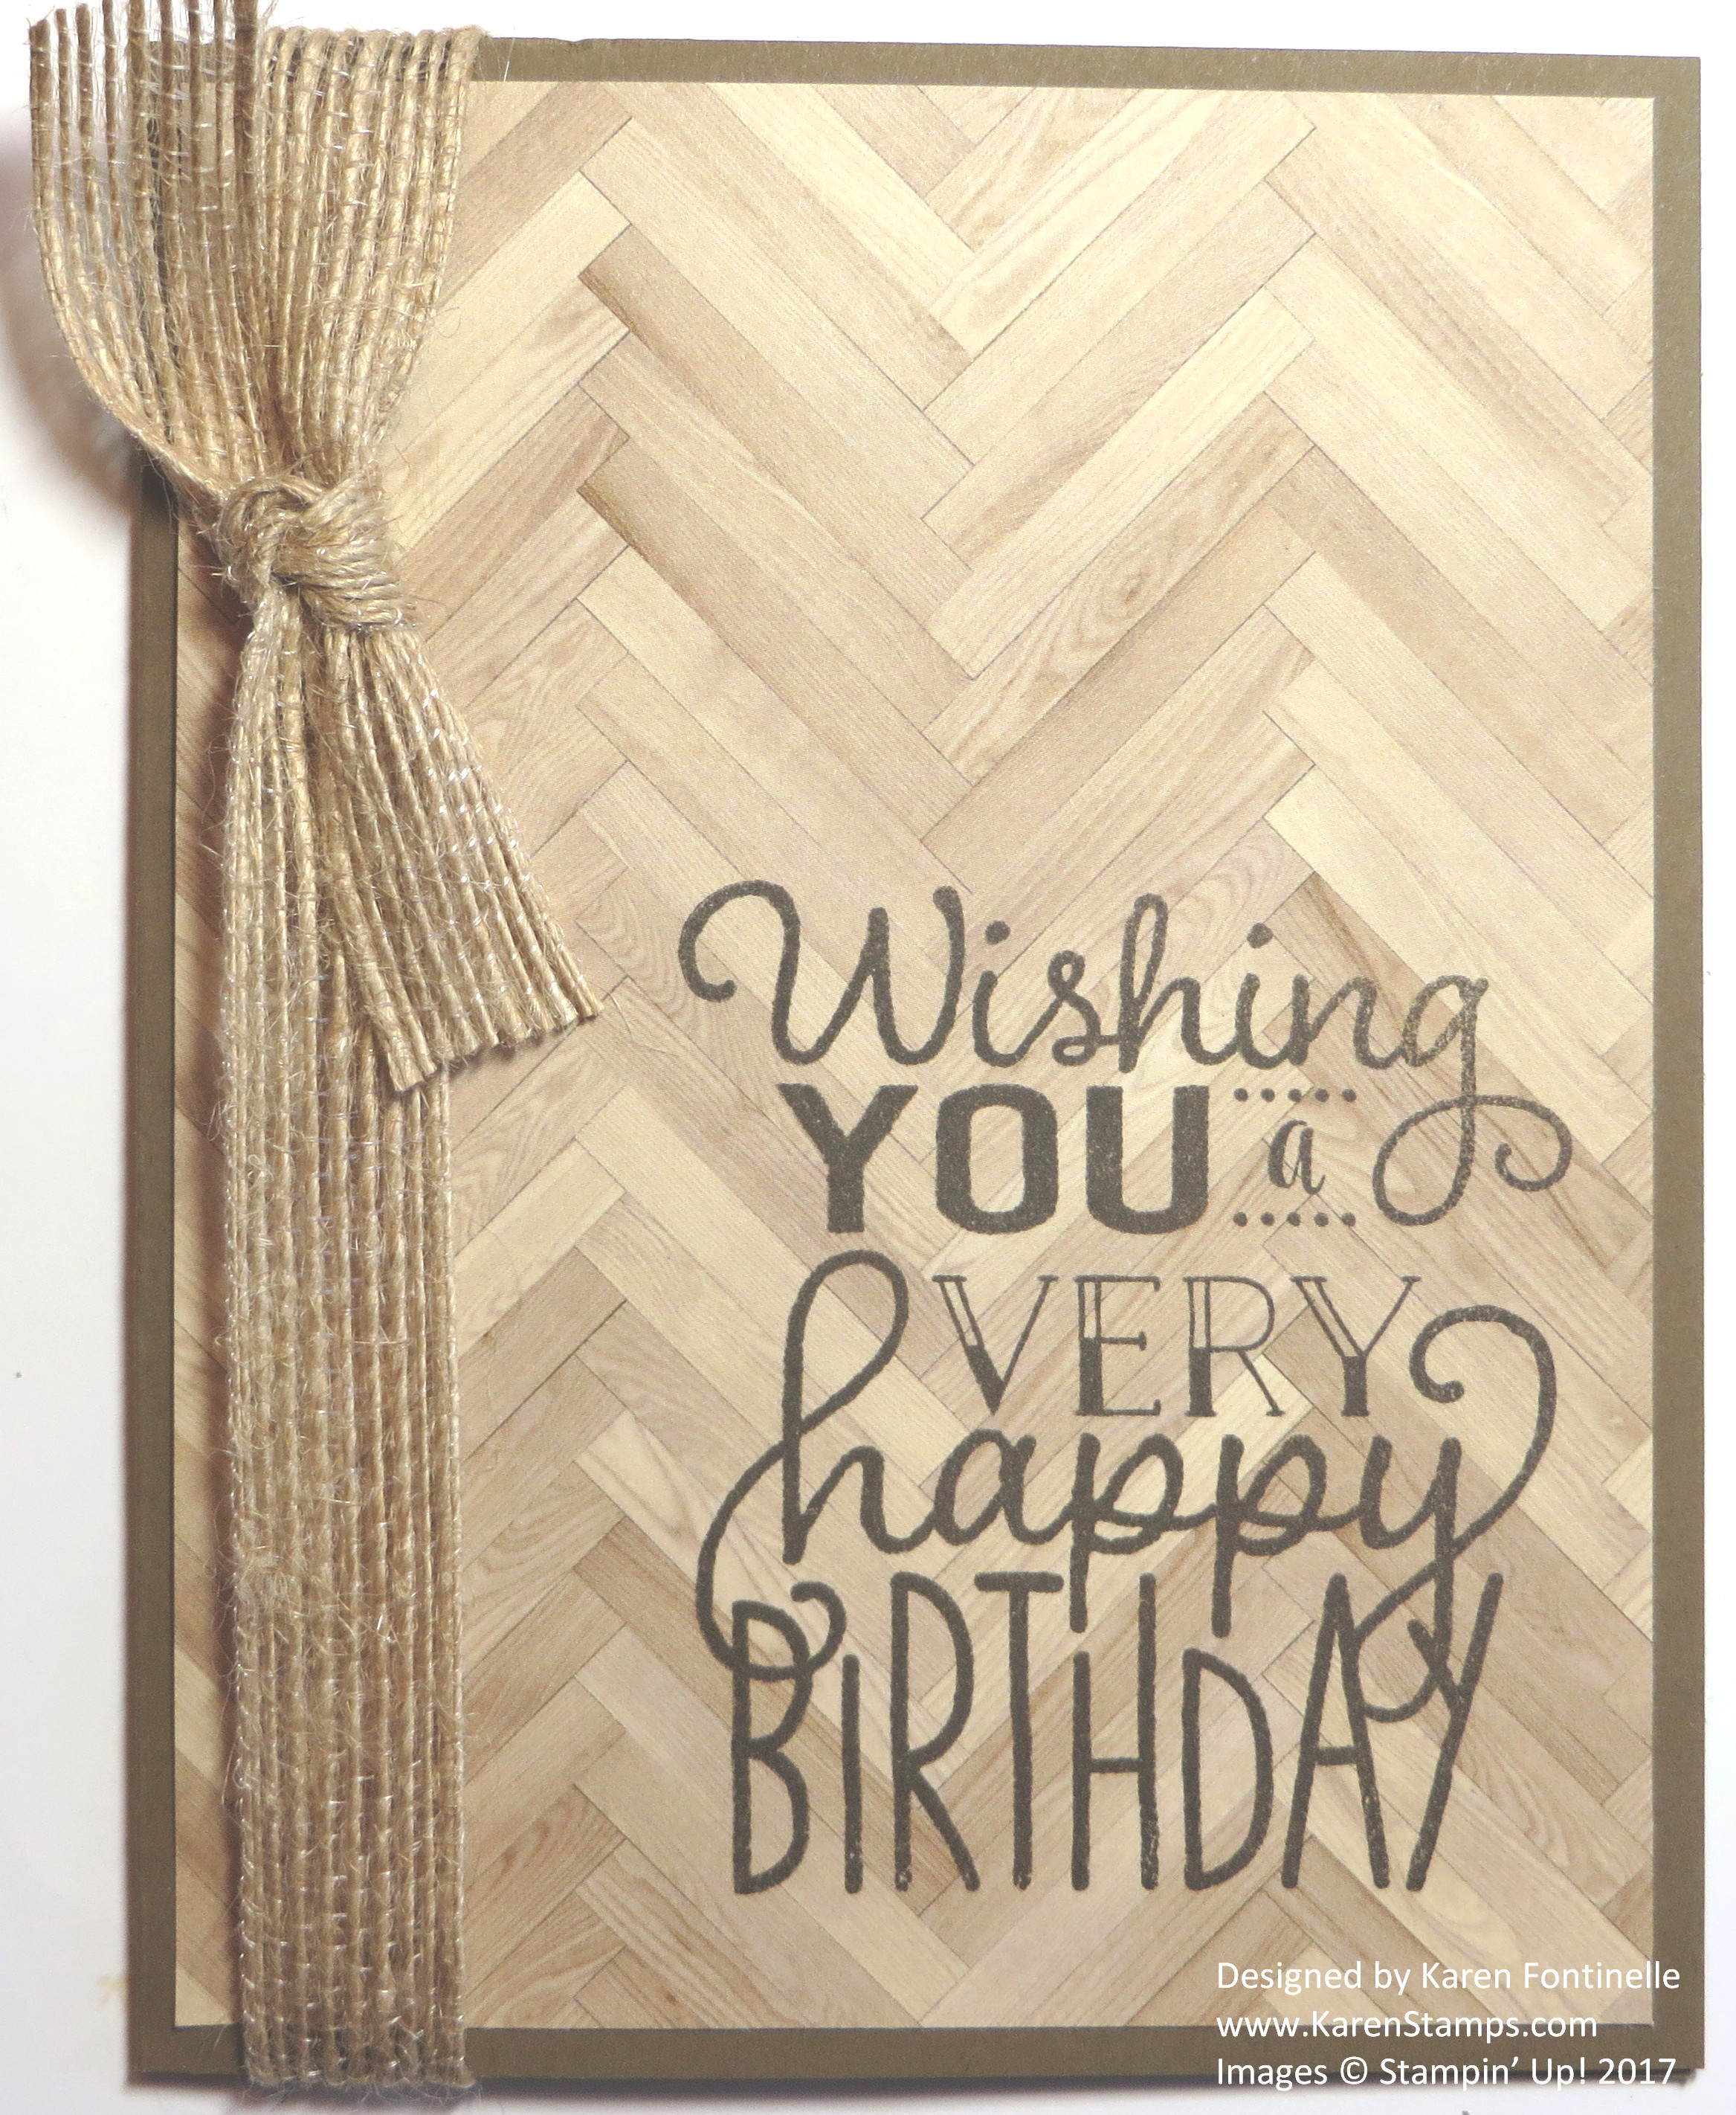 Easy Masculine Birthday Card with Serene Scenery